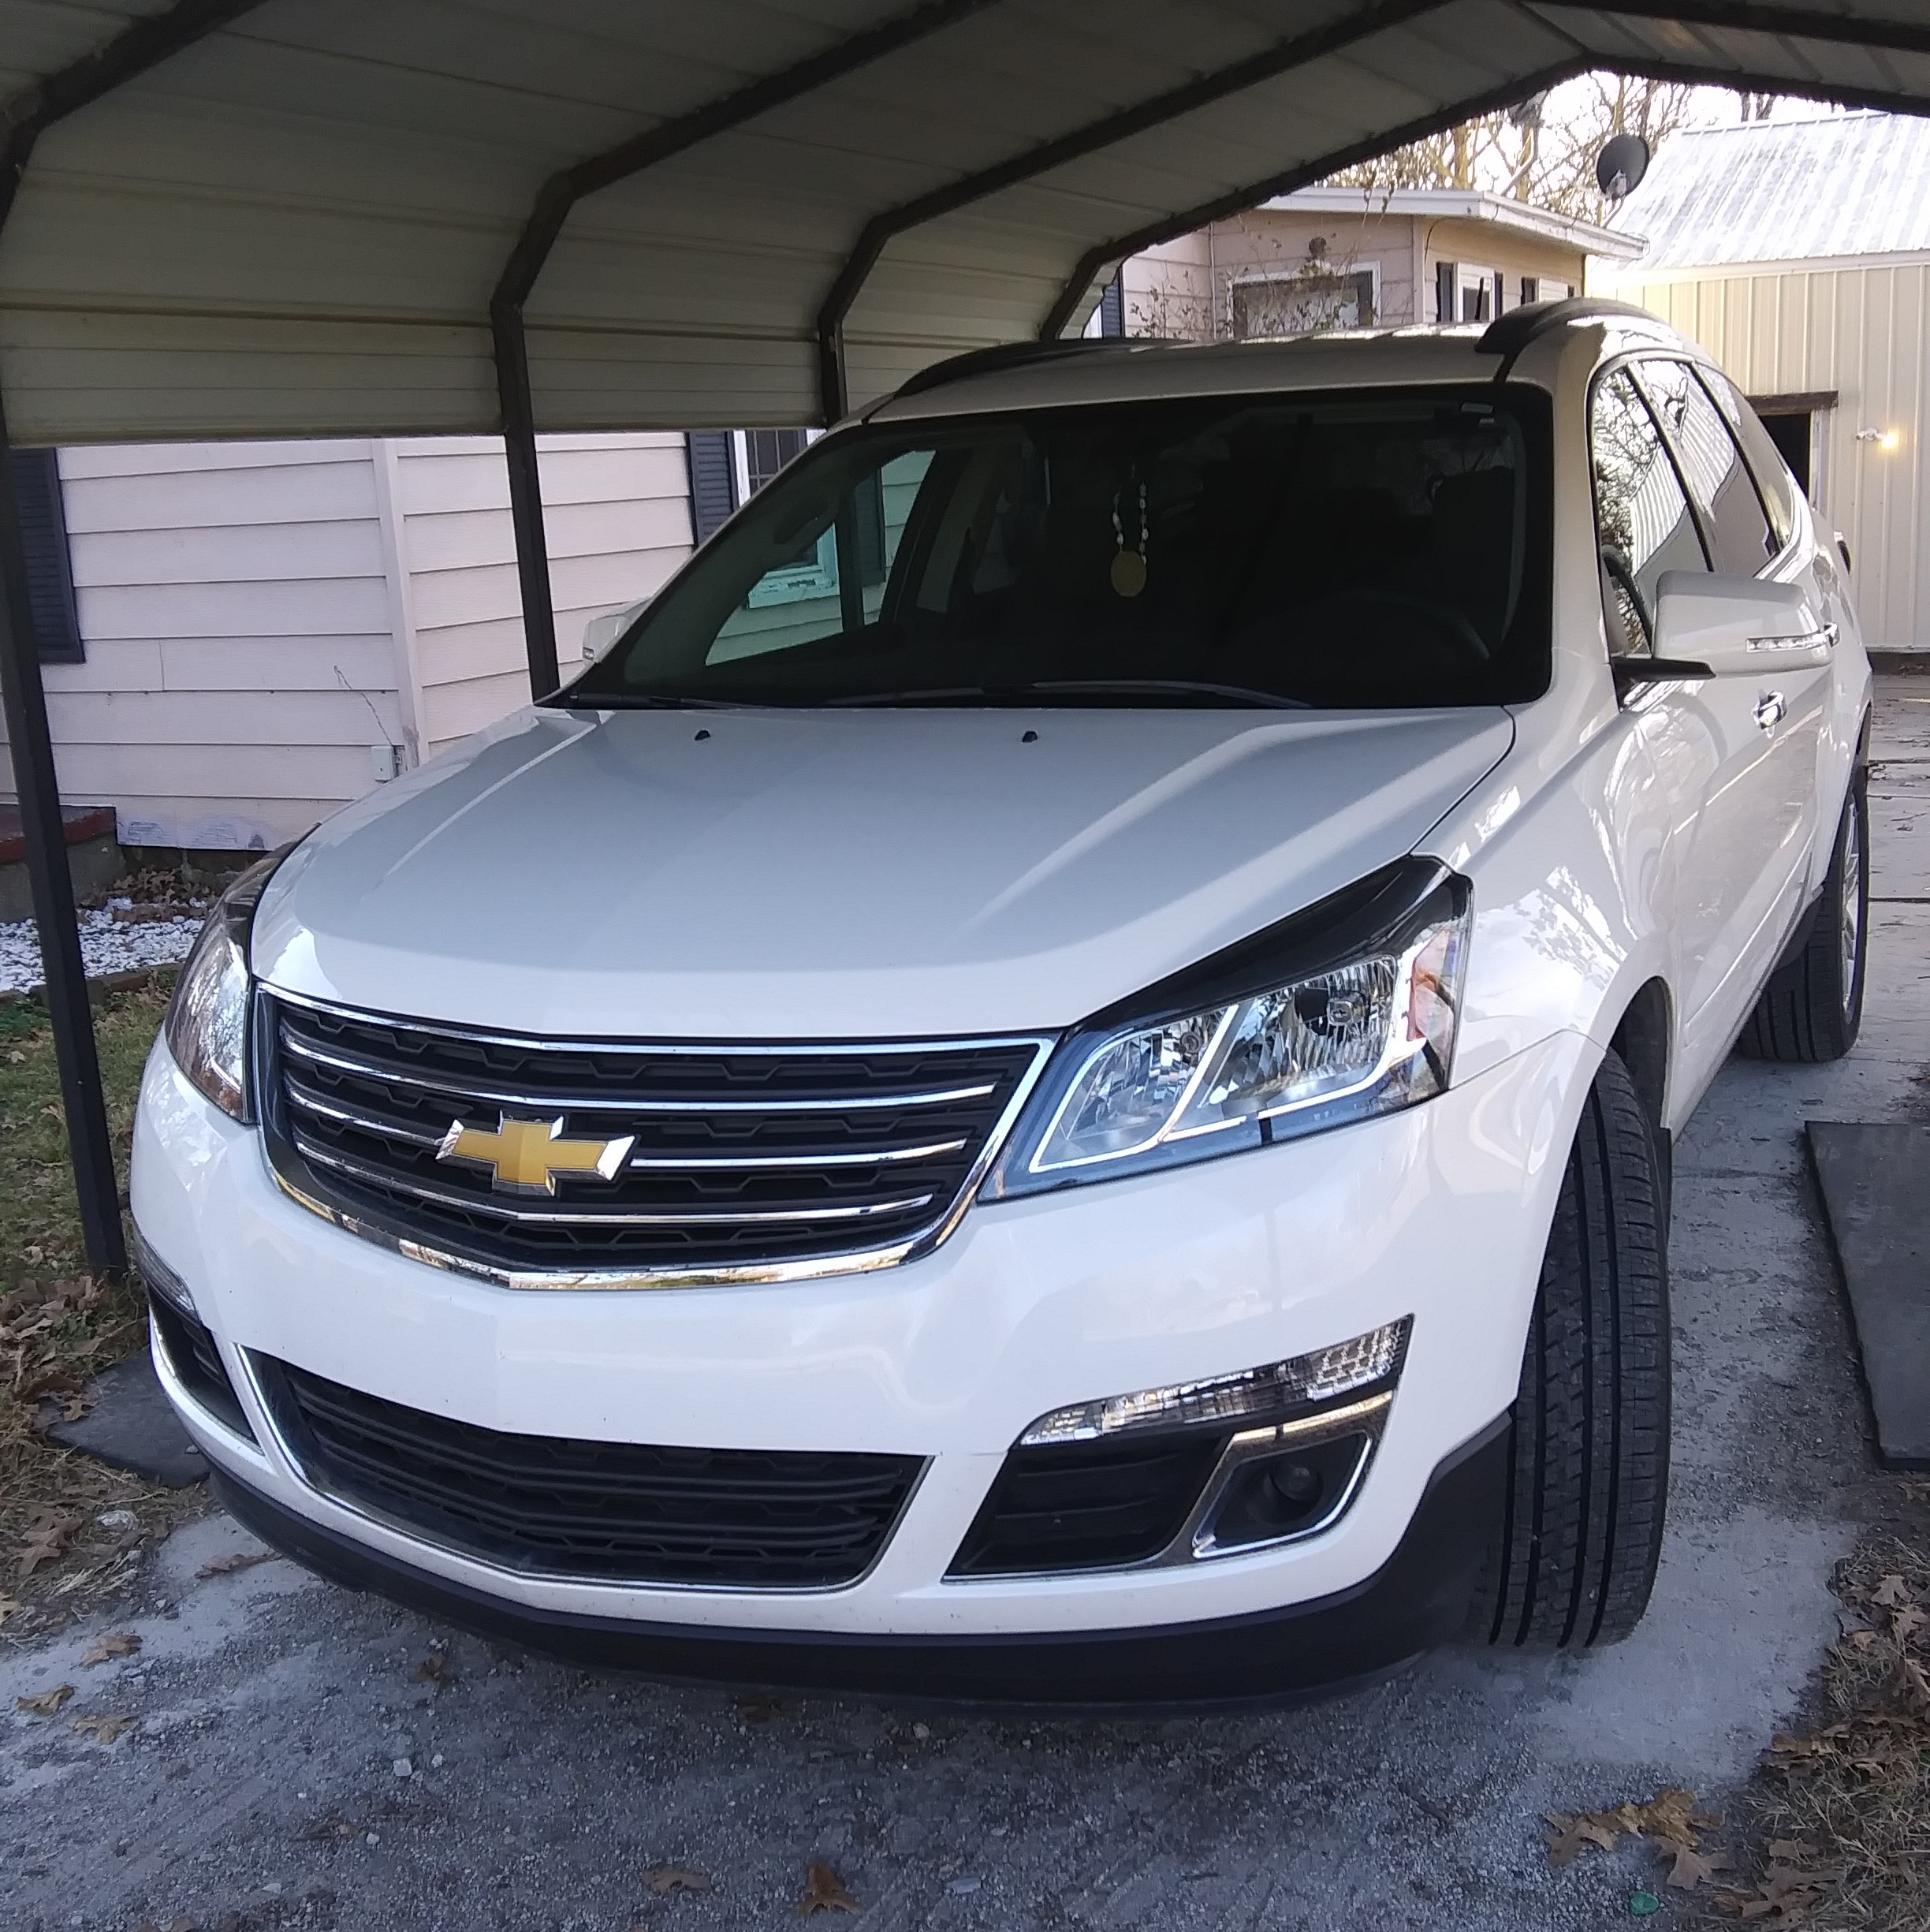 2012 Chevrolet Traverse Interior: 5.0implant 2014 Chevrolet TraverseLT-Sport-Utility-4D